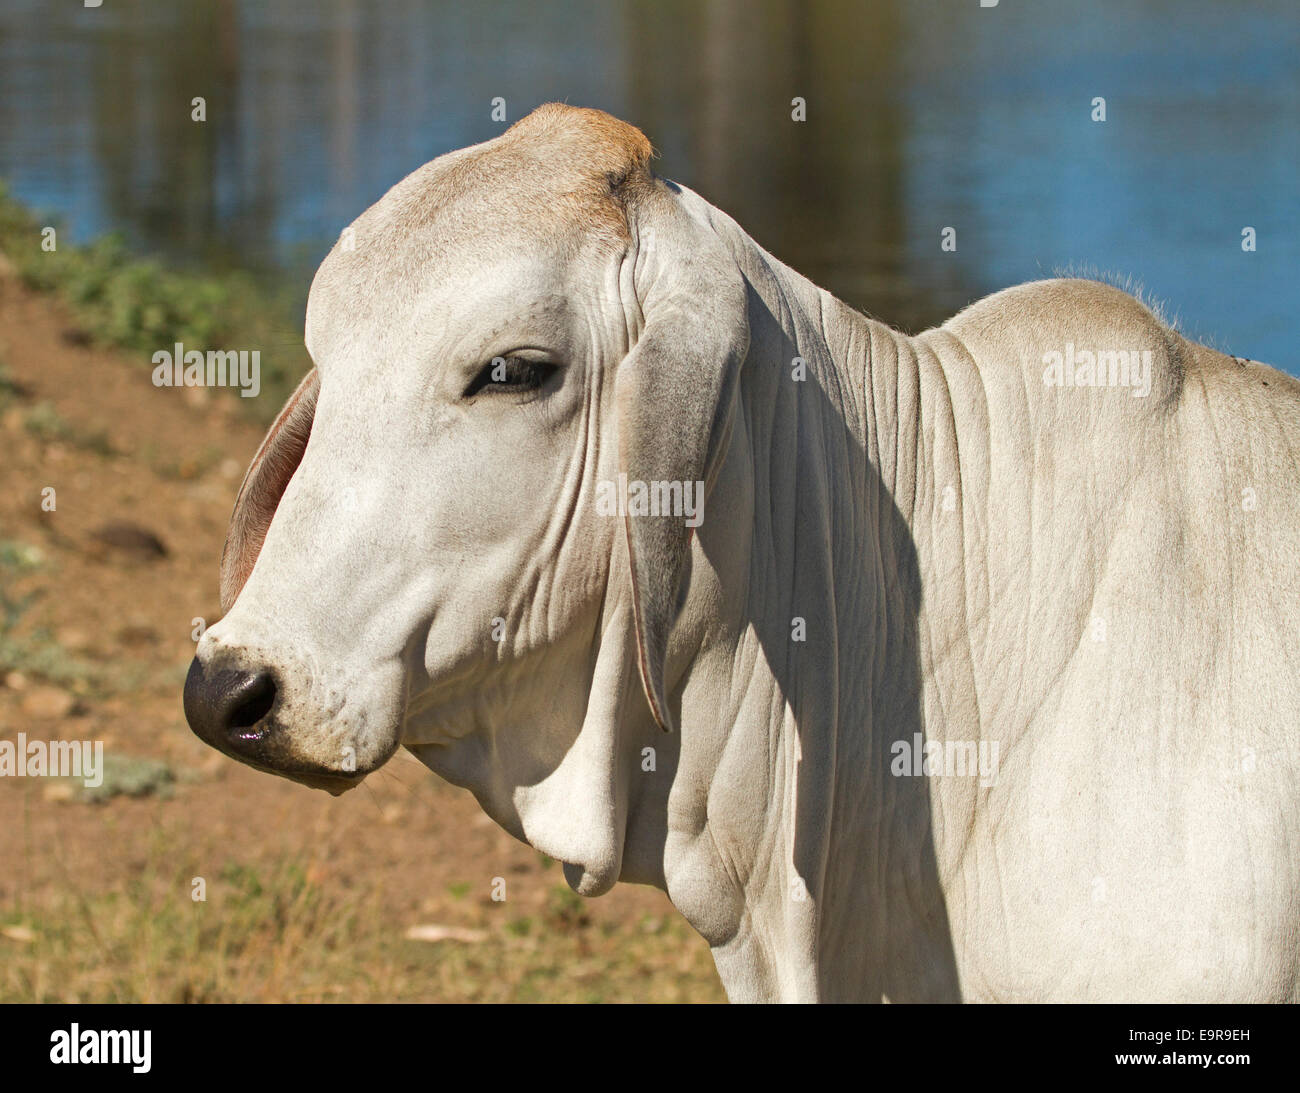 Head of young white brahman /  zebu cow, Bos indicus, with background of blue water of dam in outback Australia - Stock Image